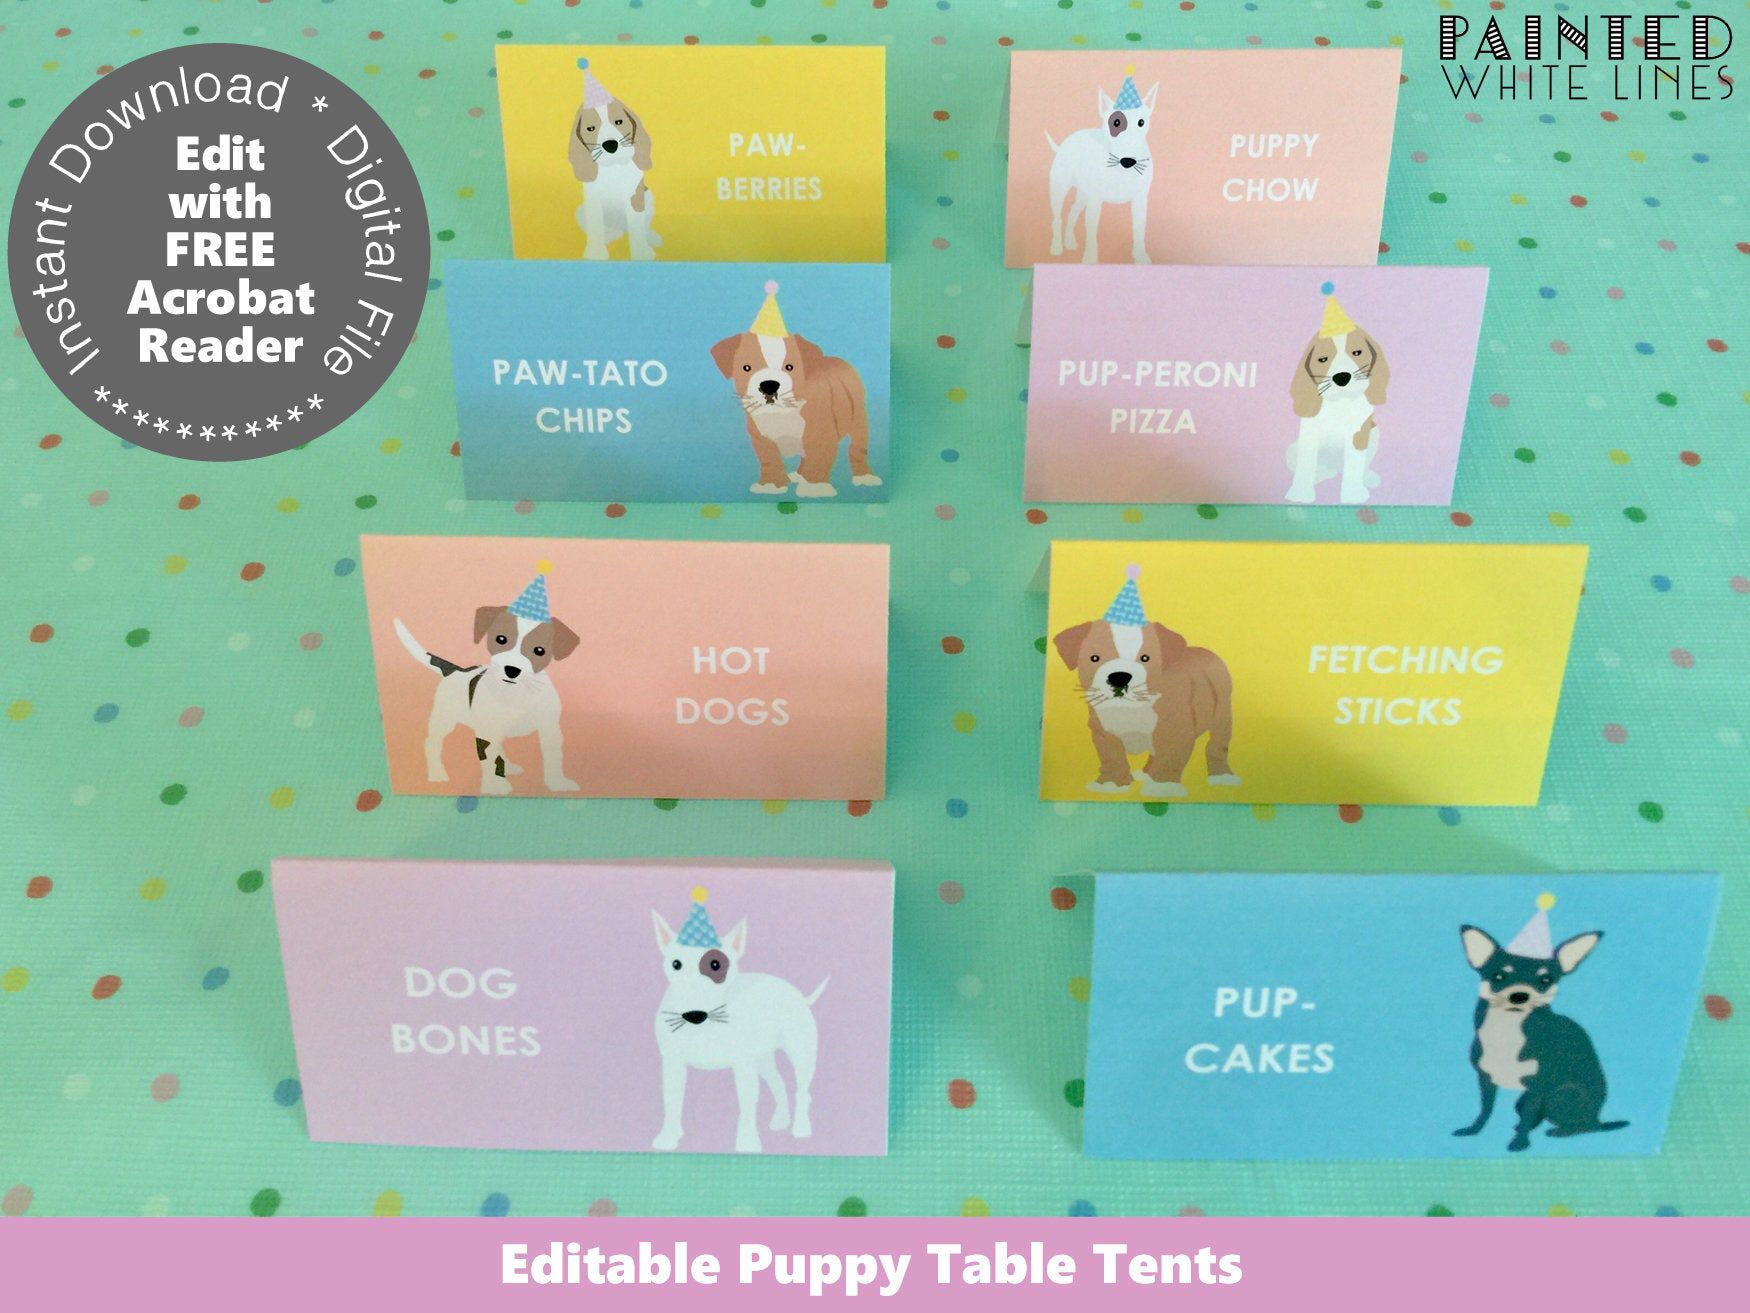 Download Puppy Party Food Labels Printable Party Favor Bag Topper Template Puppy Birthday Party Dog Birthday Girls Birthday Party Decor Pwl6 Pwl25 Puppy Party Party Food Labels Puppy Birthday